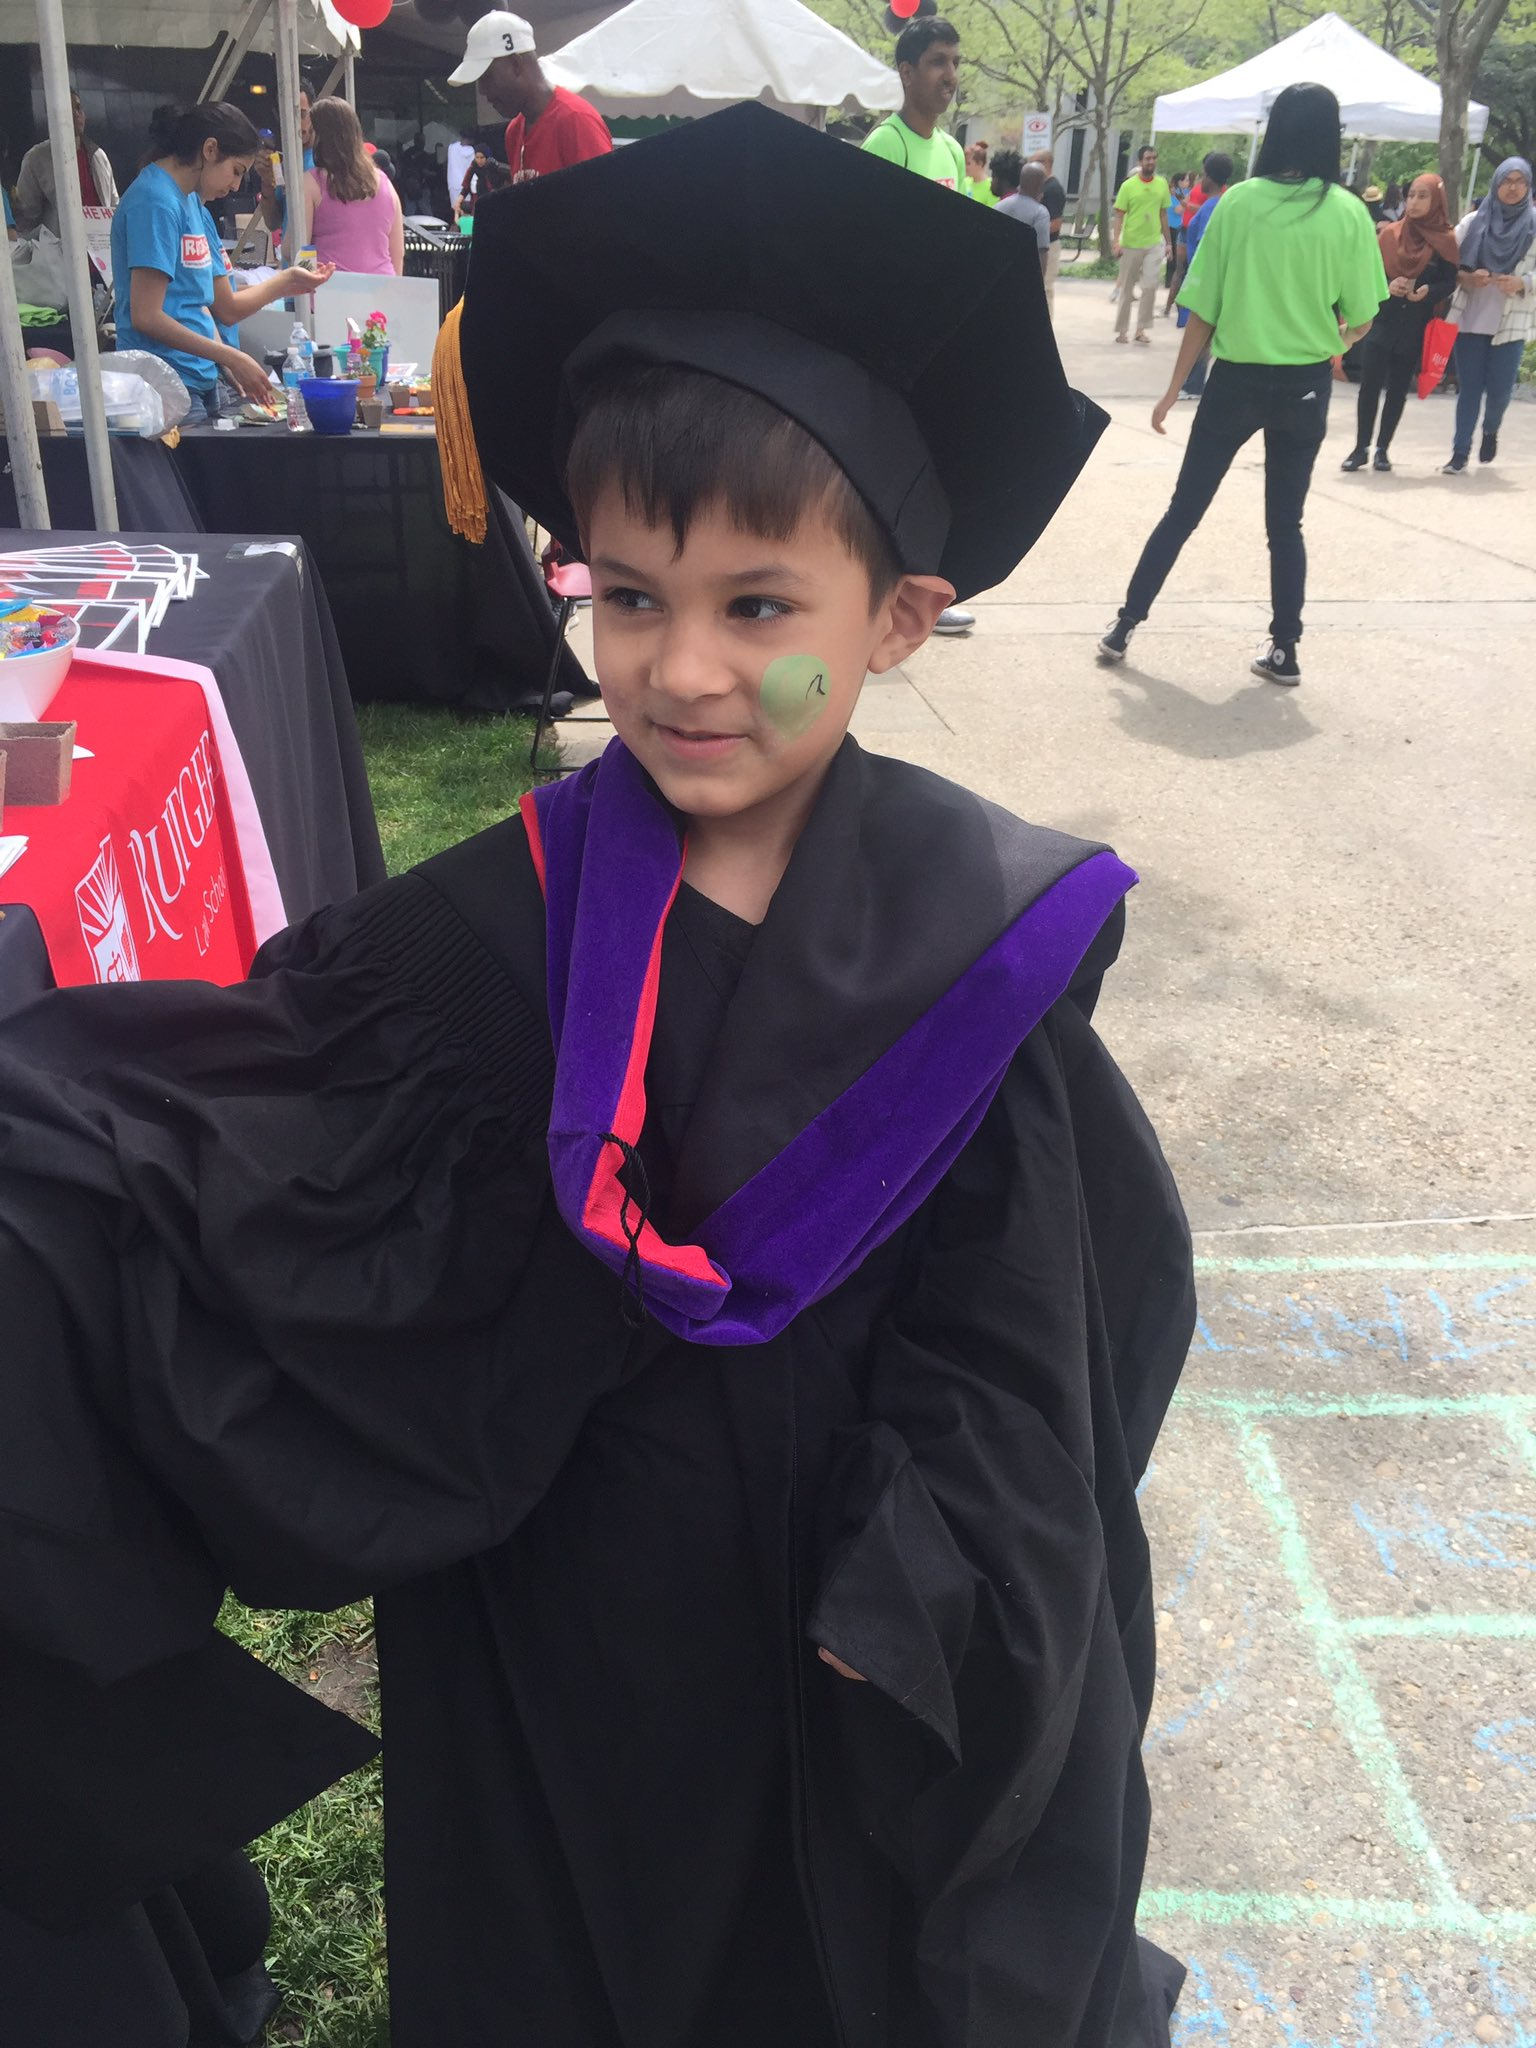 Five-year-old John Theo tries on a law school graduation robe.  #RutgersDay https://t.co/g6rTySQjHx